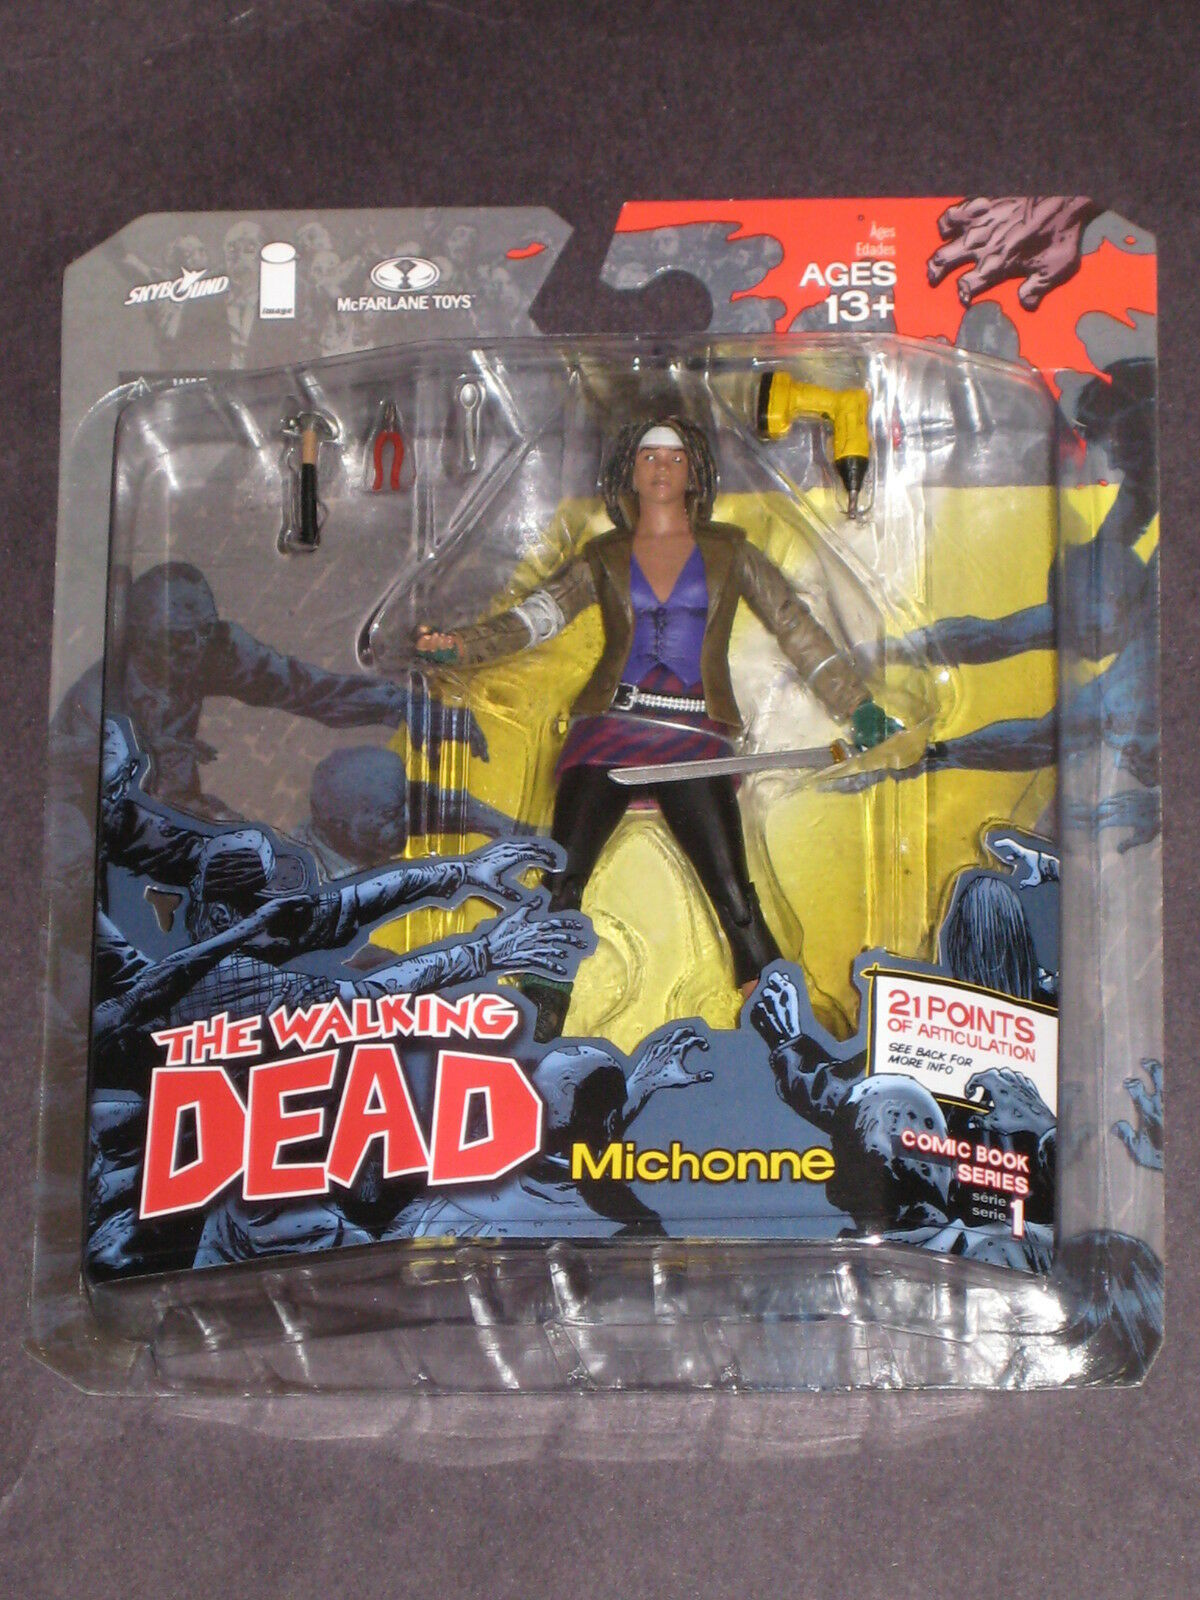 THE WALKING DEAD COMIC SERIES 1 MICHONNE FIGURE IMAGE KIRKMAN MCFARLANE